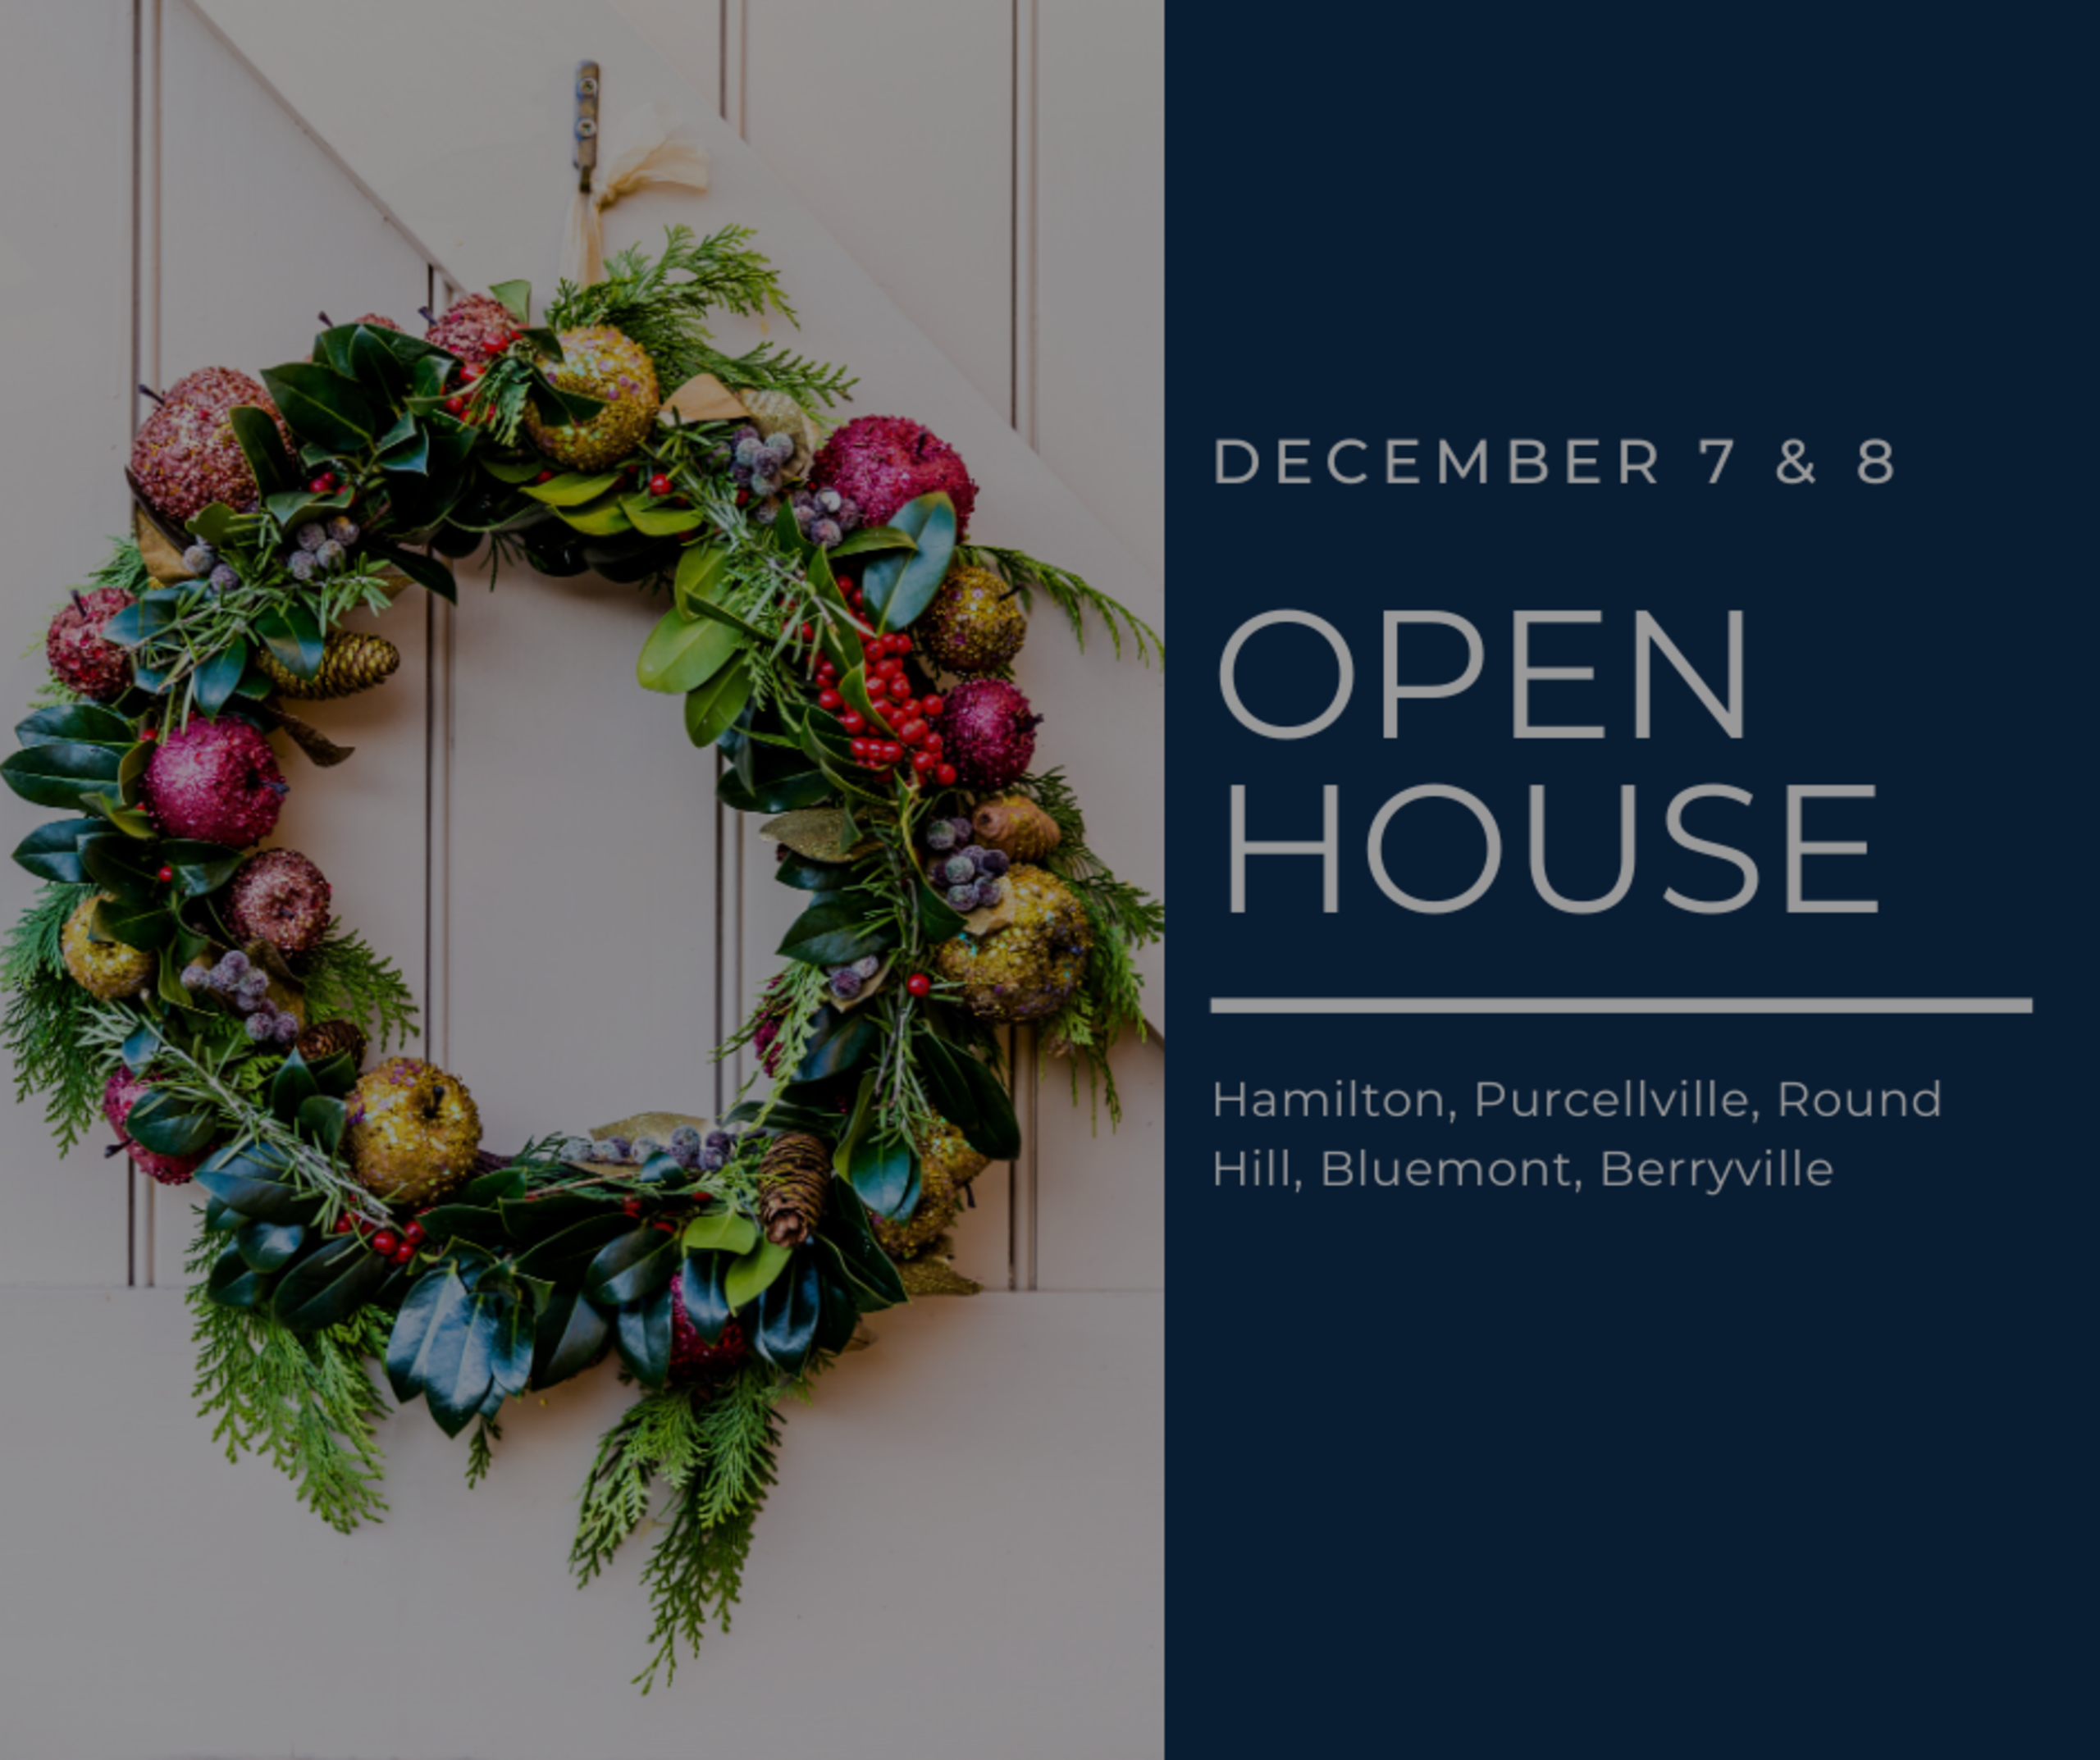 Open House List 12/7/19 – 12/8/19